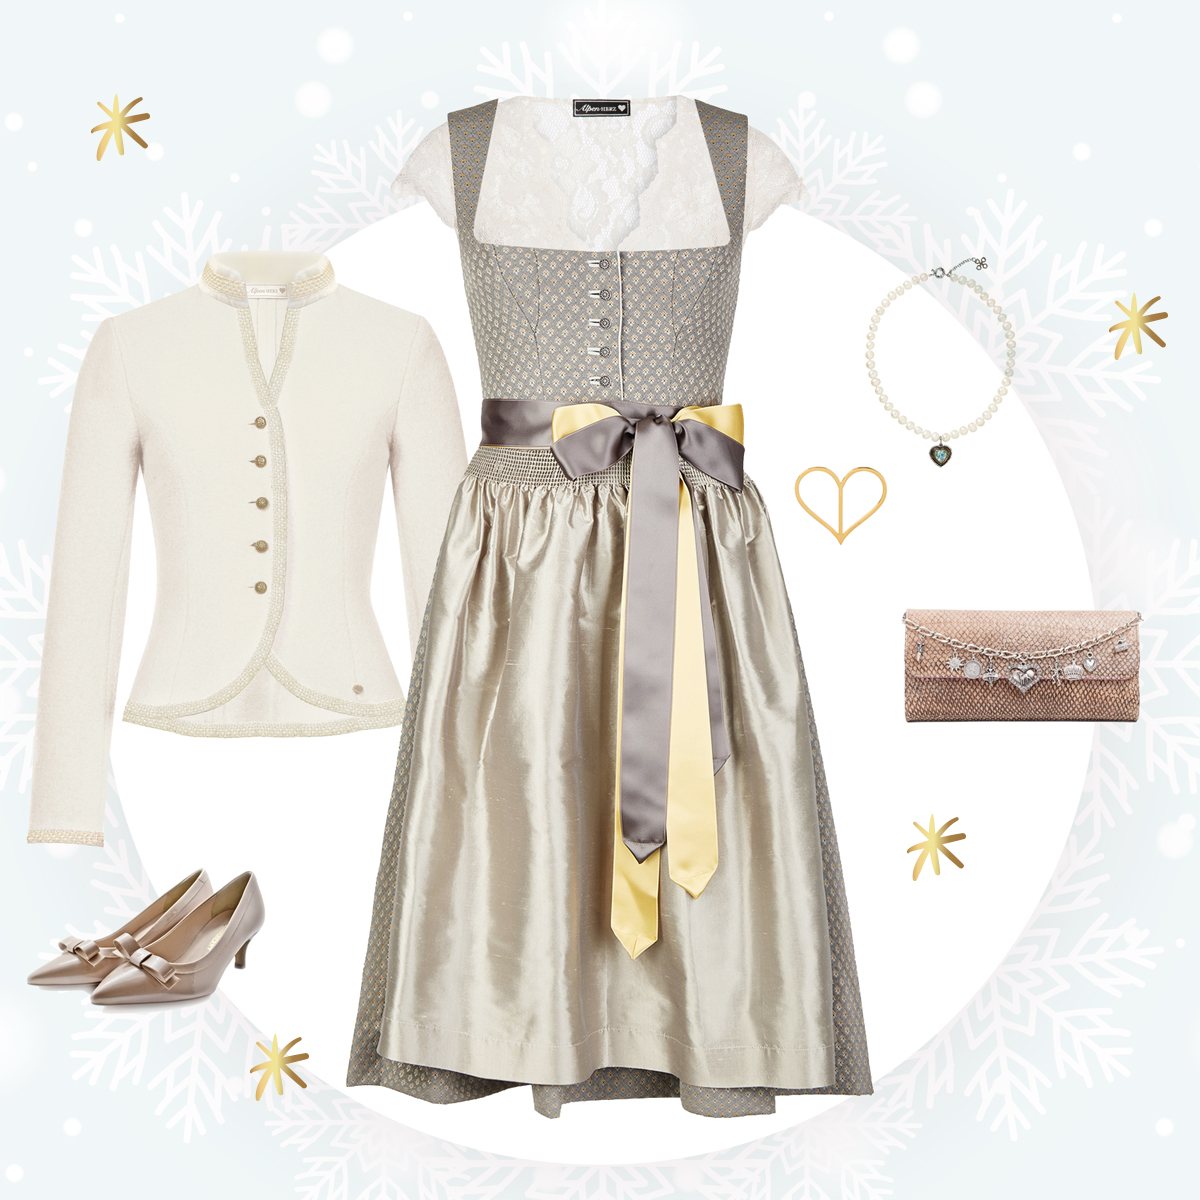 Festliches Dirndl-Outfit Amsel Fashion